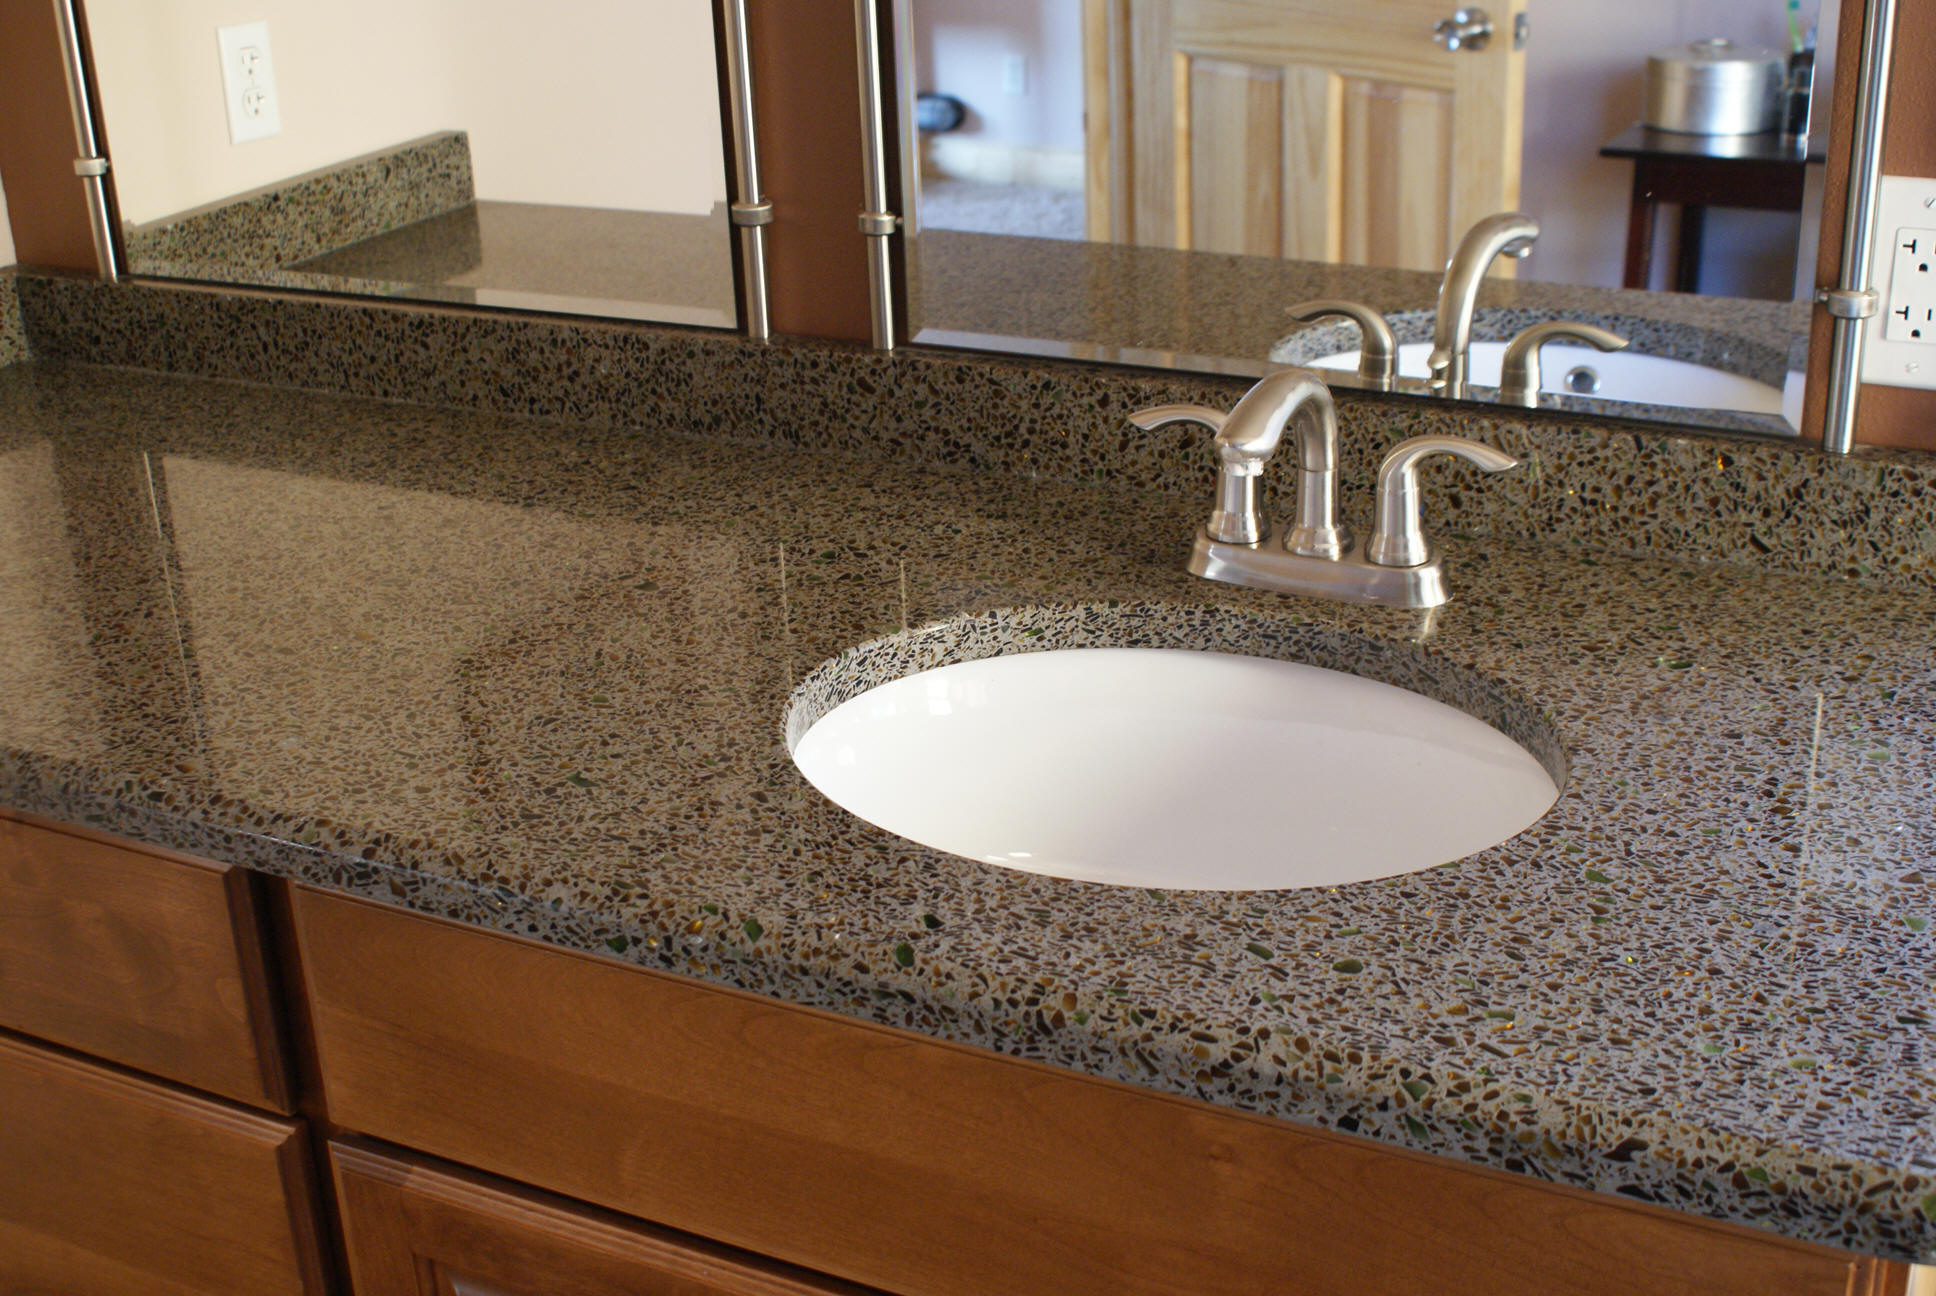 Types of countertops for bathrooms - Side Stone1